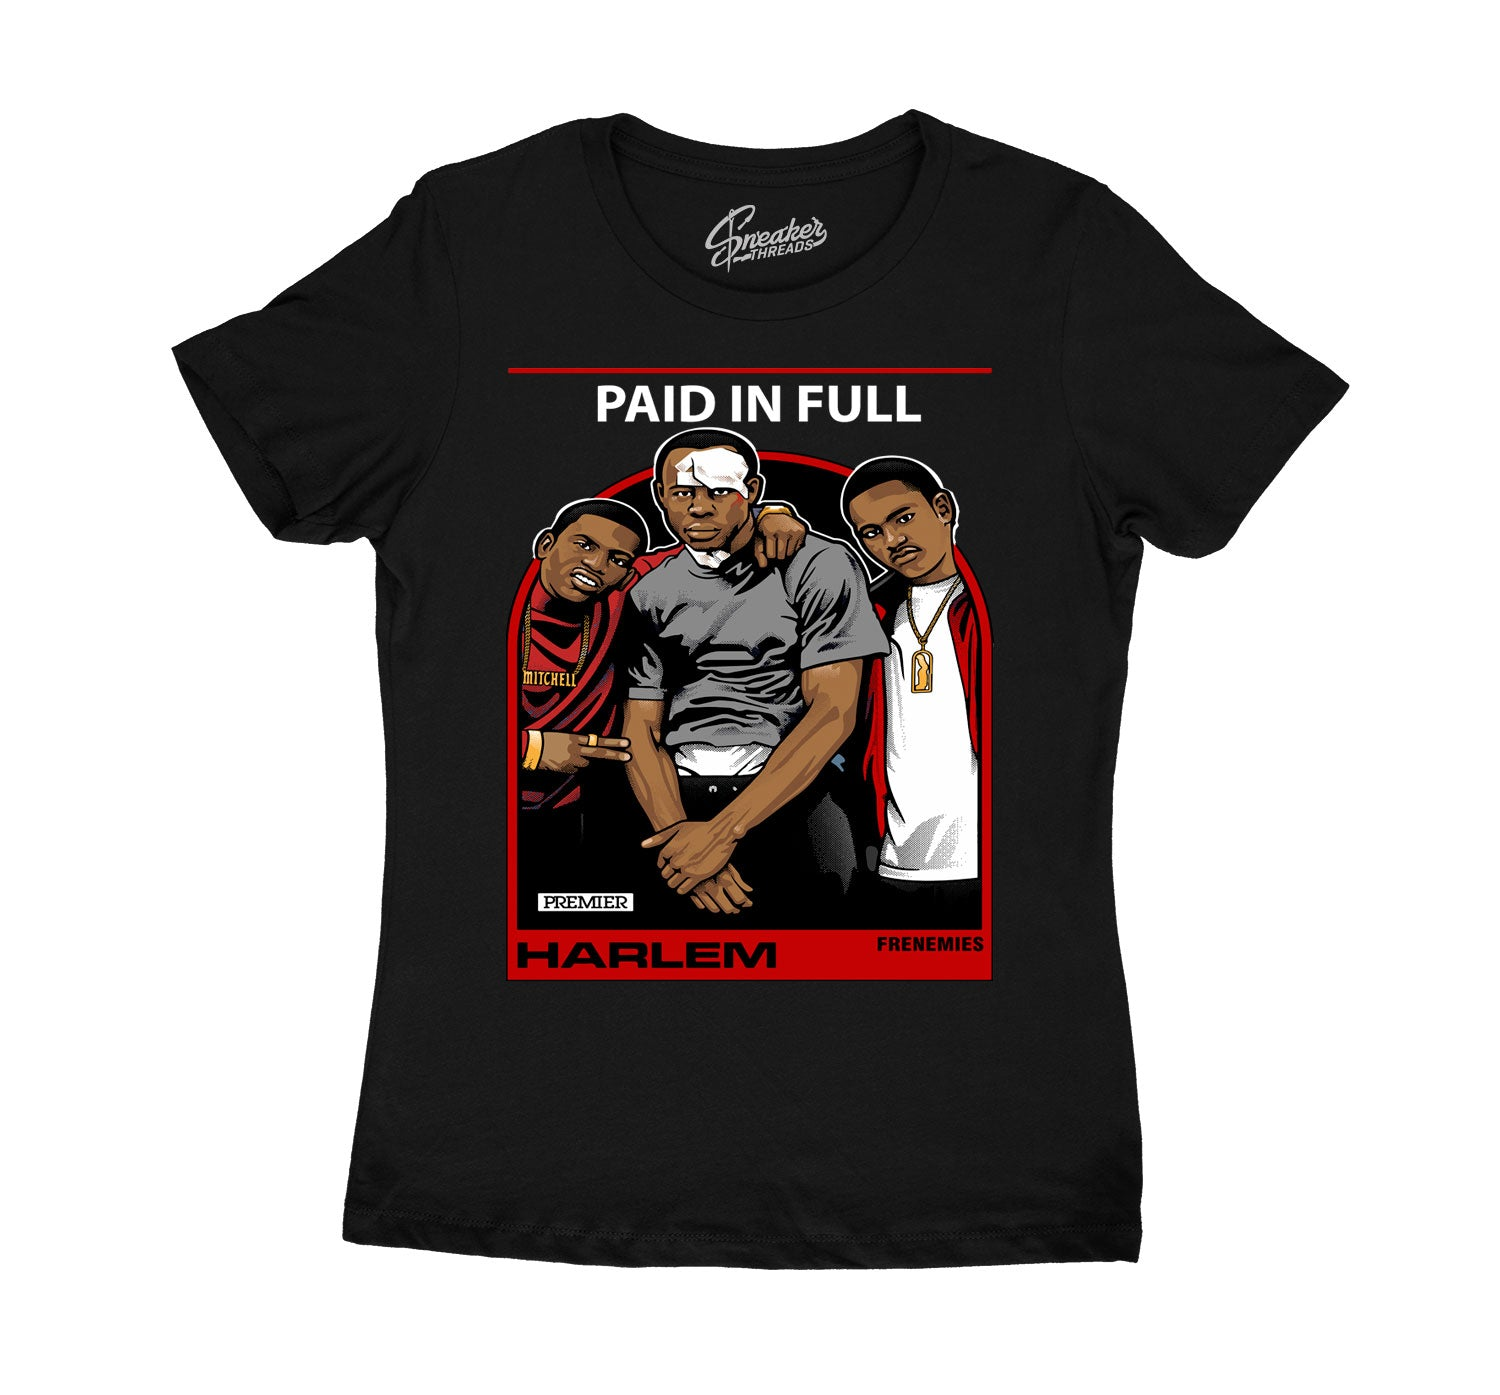 T shirt collection to match with mens Jordan 13 red flint sneaker collection